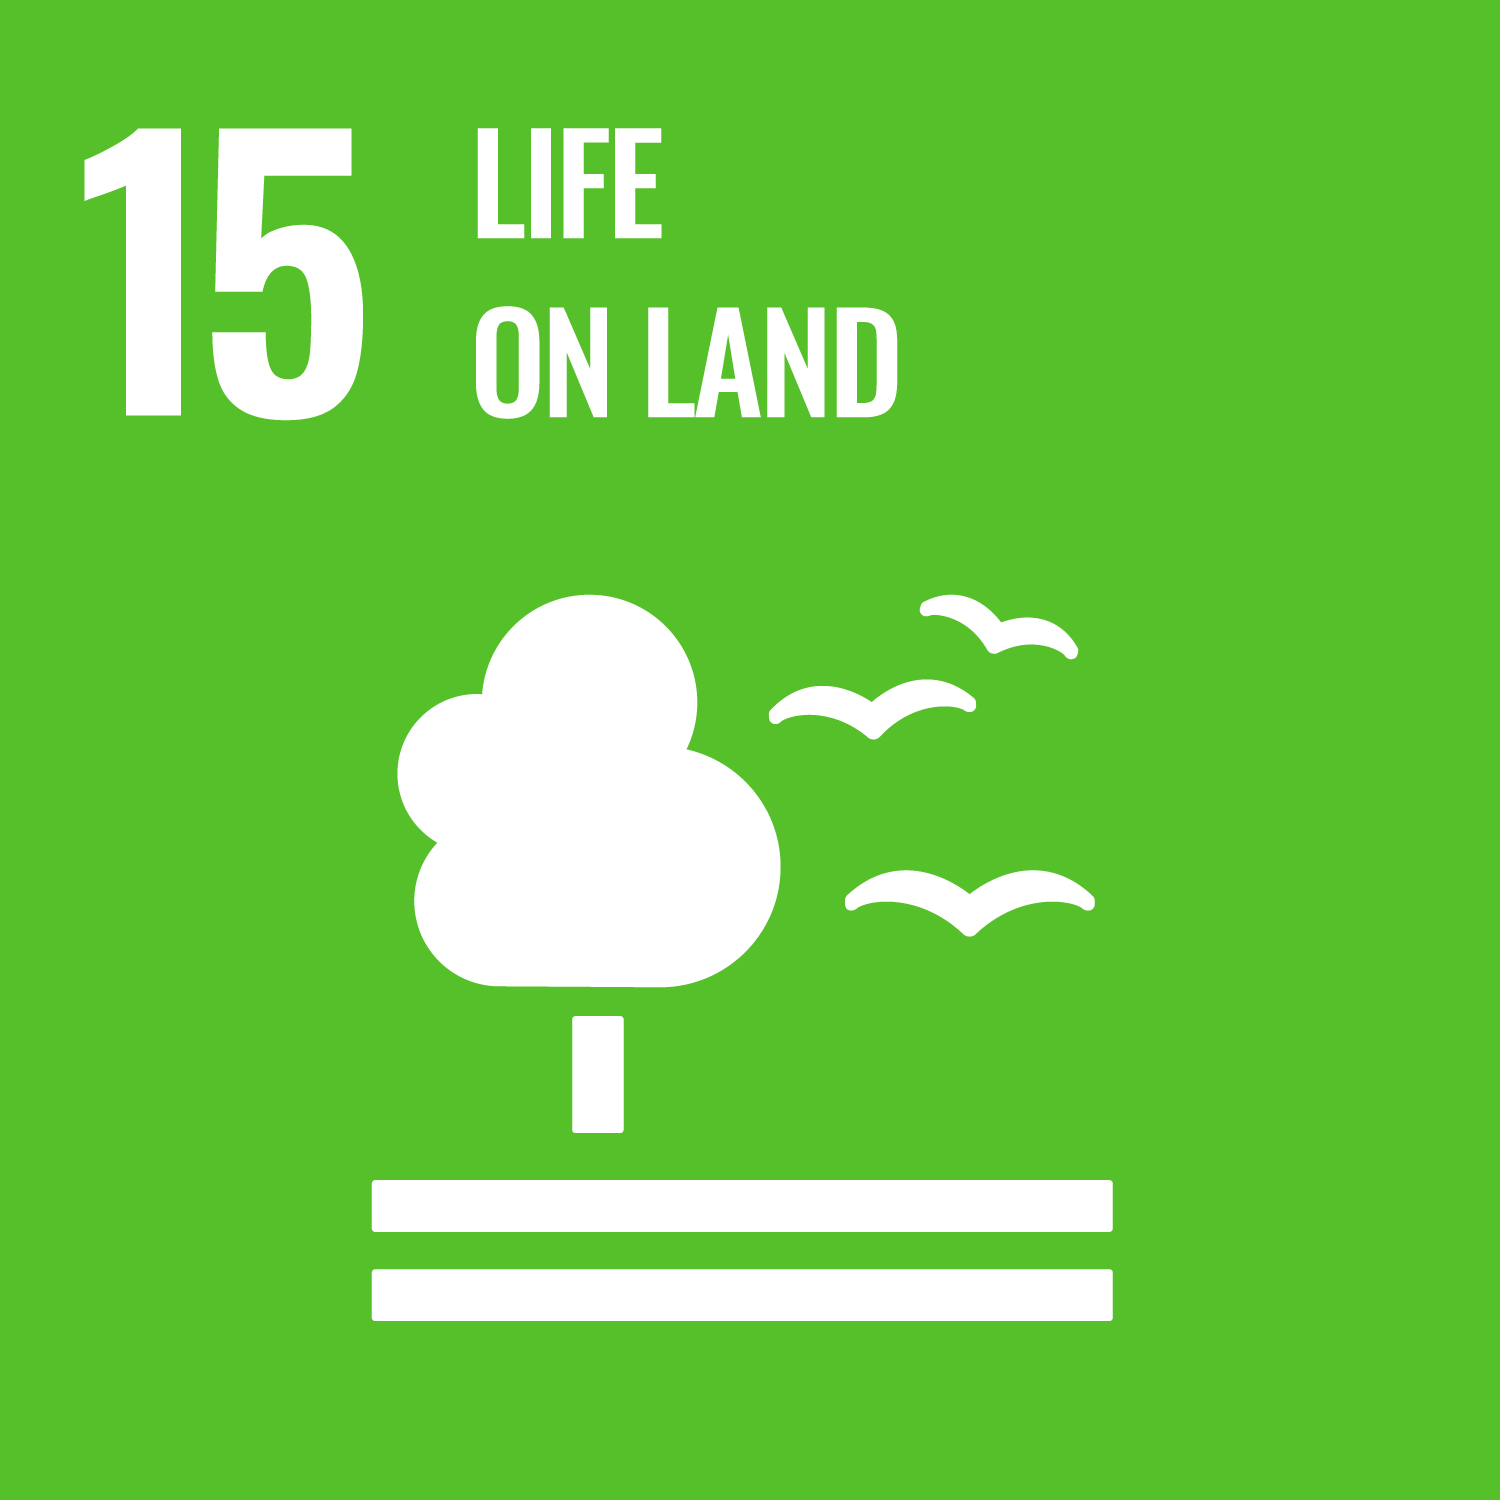 SDG 15 - Quiz (Coming soon!)